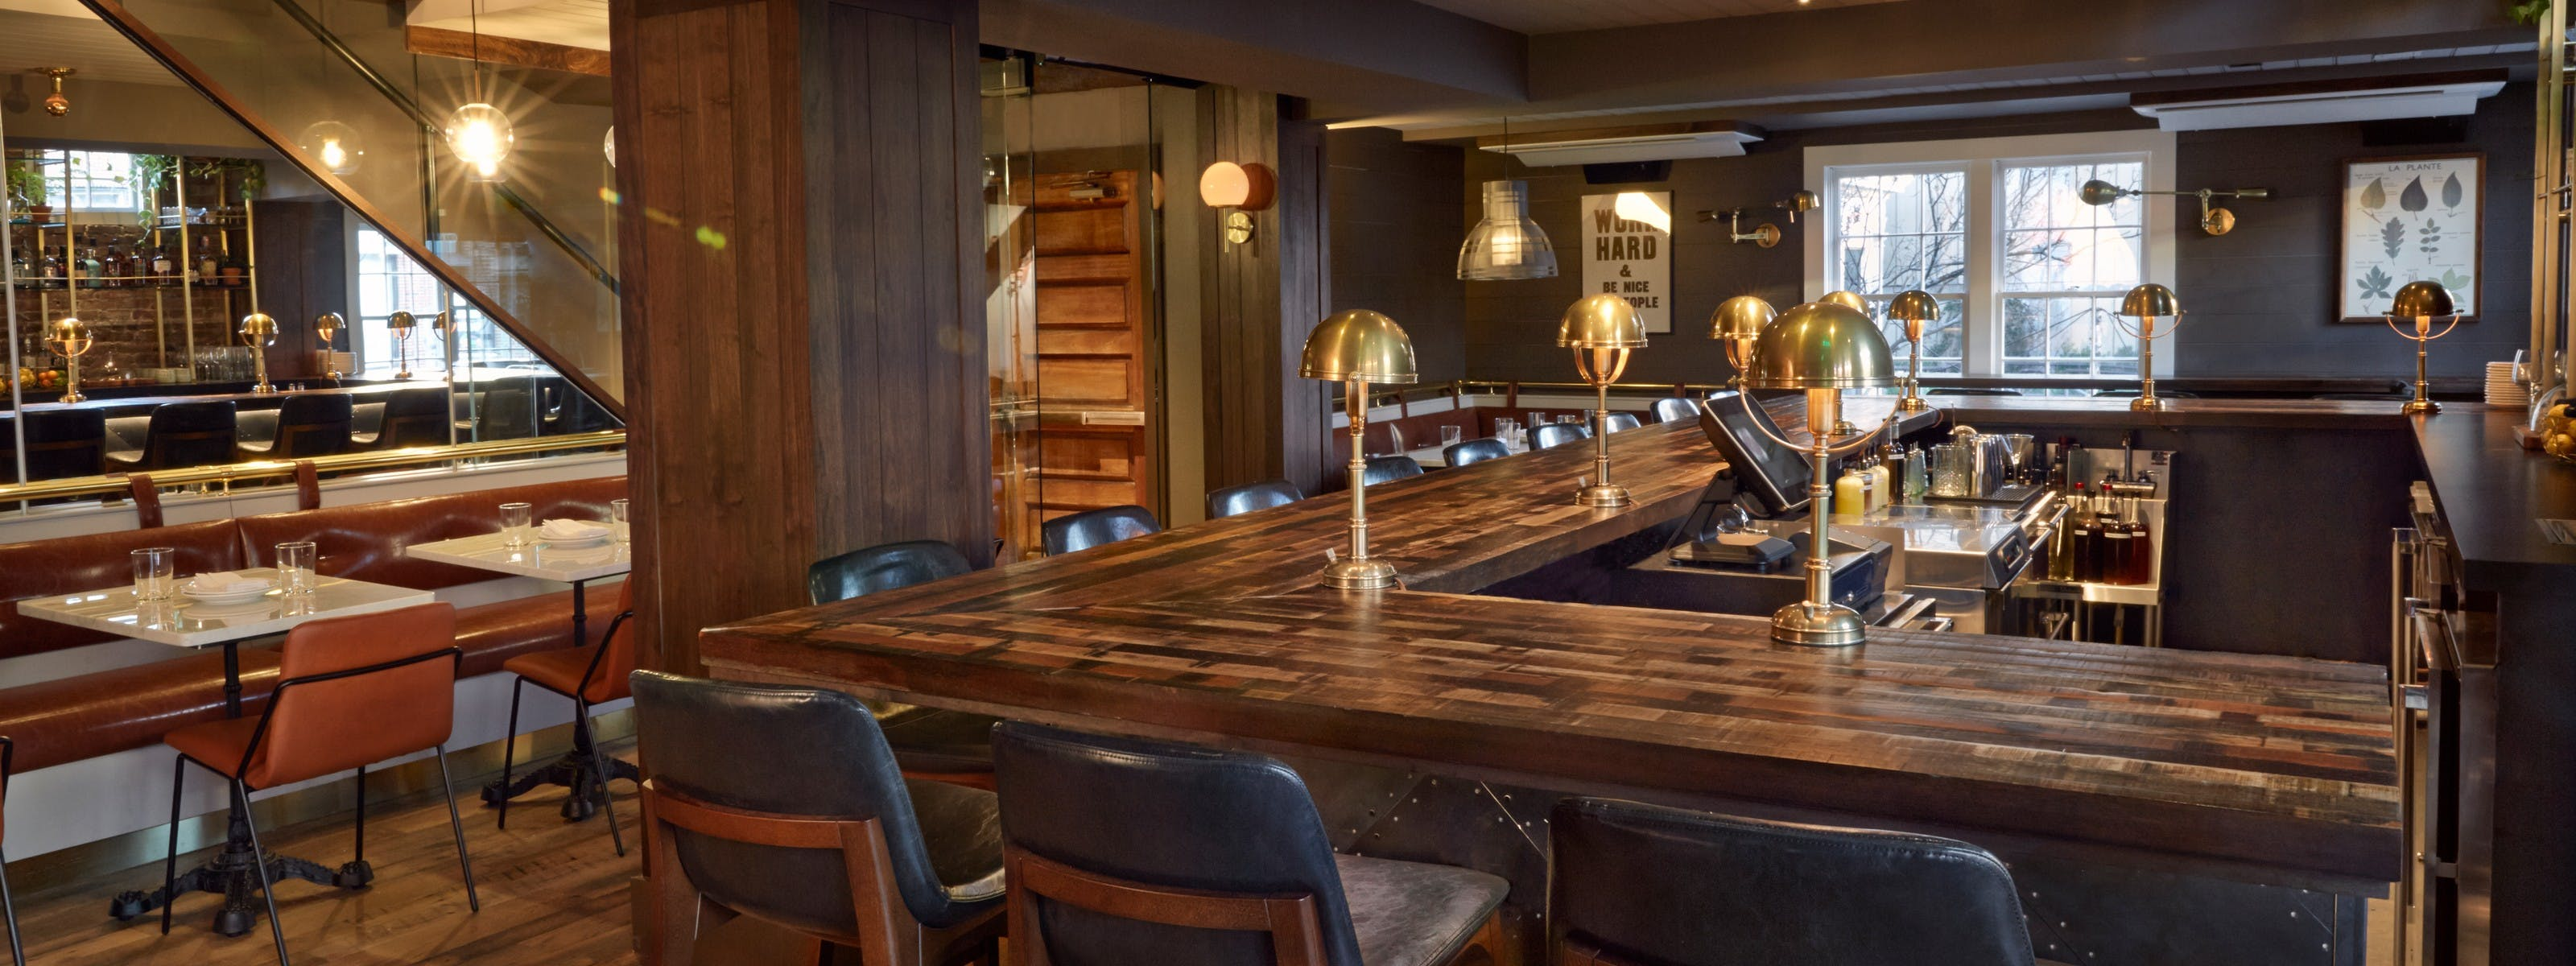 Where To Eat And Drink Around Harvard - Boston - The Infatuation